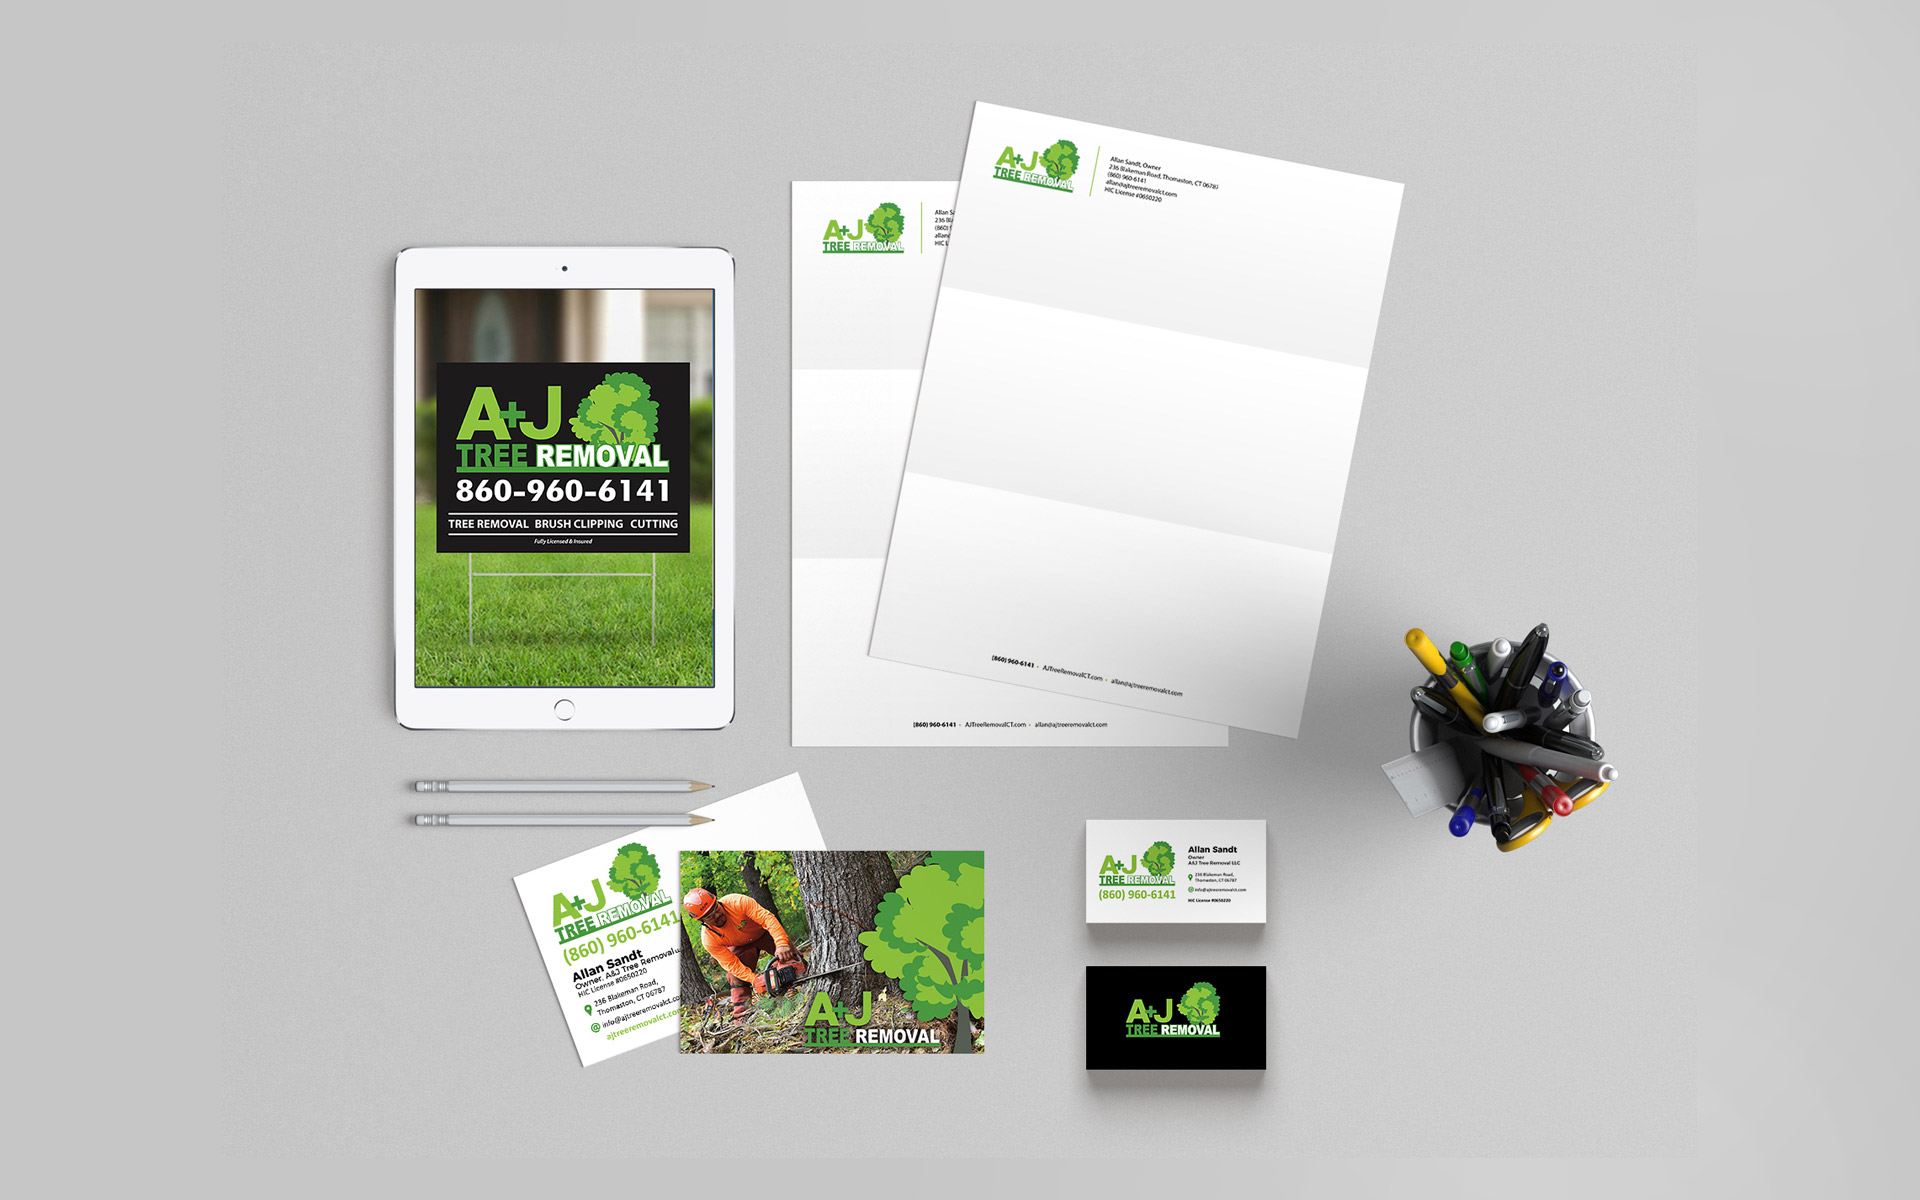 A+J Tree Removal Branding Development